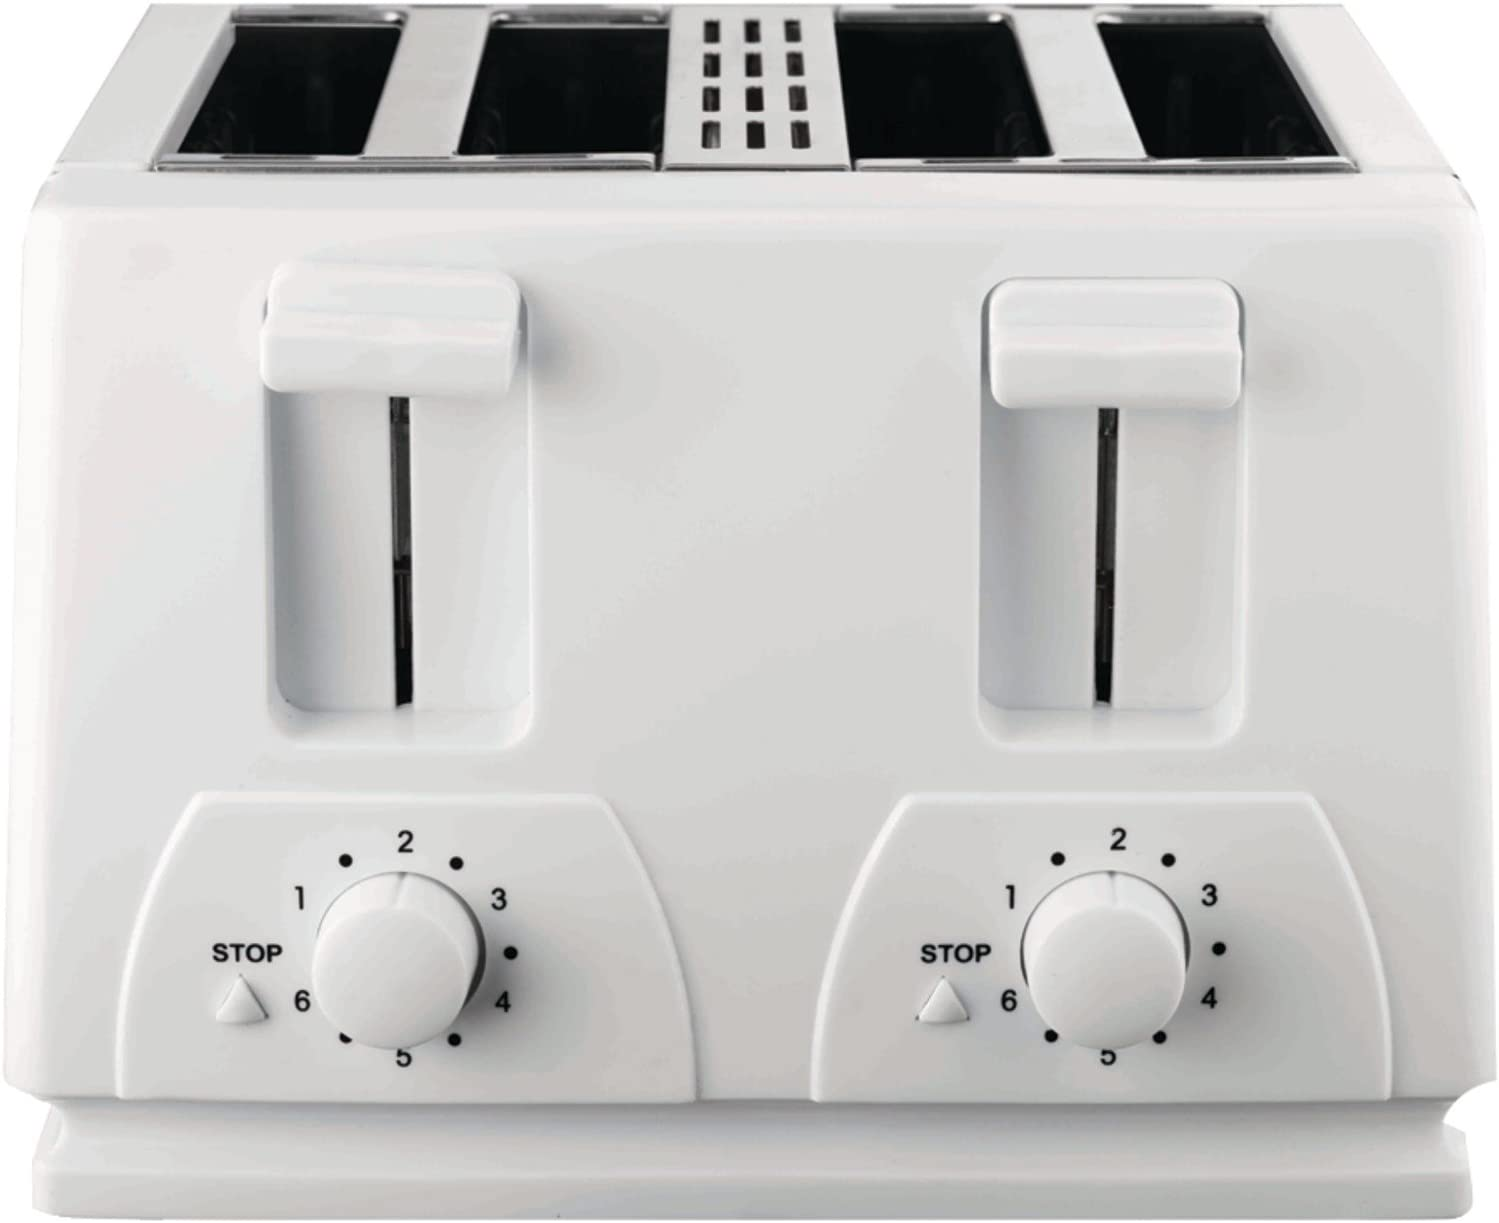 Brentwood TS-265 Toaster Cool Touch, 4-Slice, White